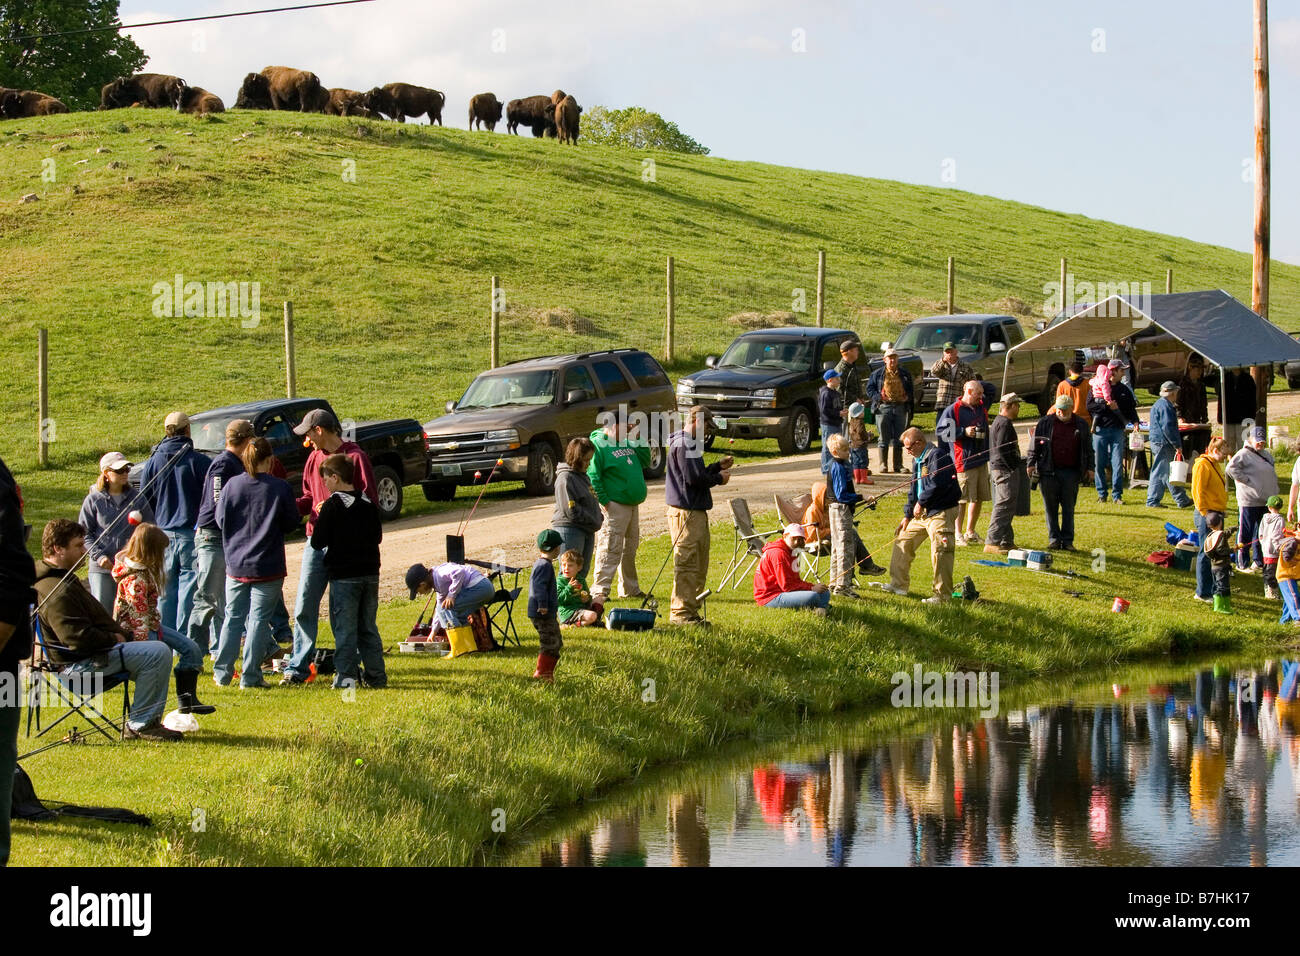 Families gathered around pond for summer morning fishing derby, buffalo in background - Stock Image